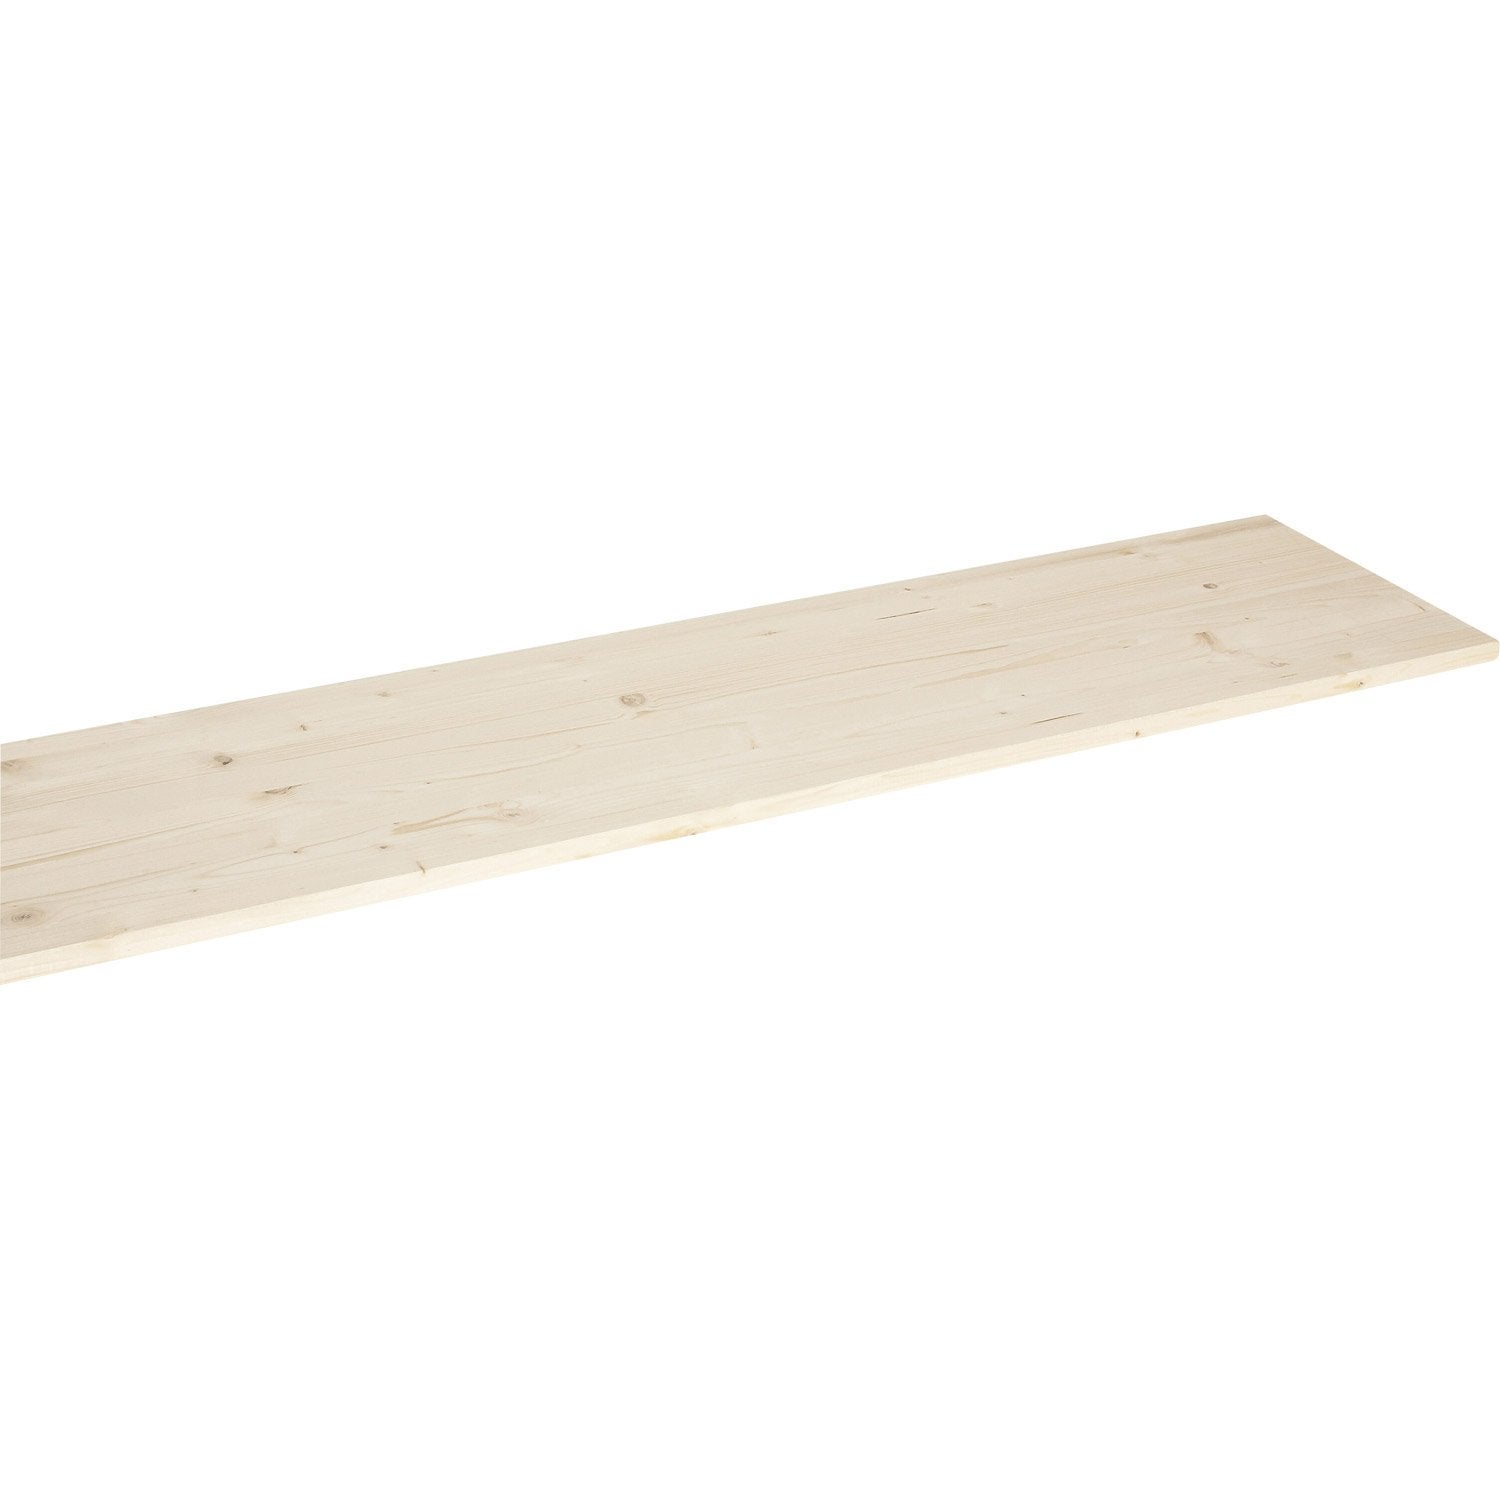 Tablette sapin lamell coll solid x p leroy merlin - Leroy merlin planche sapin ...